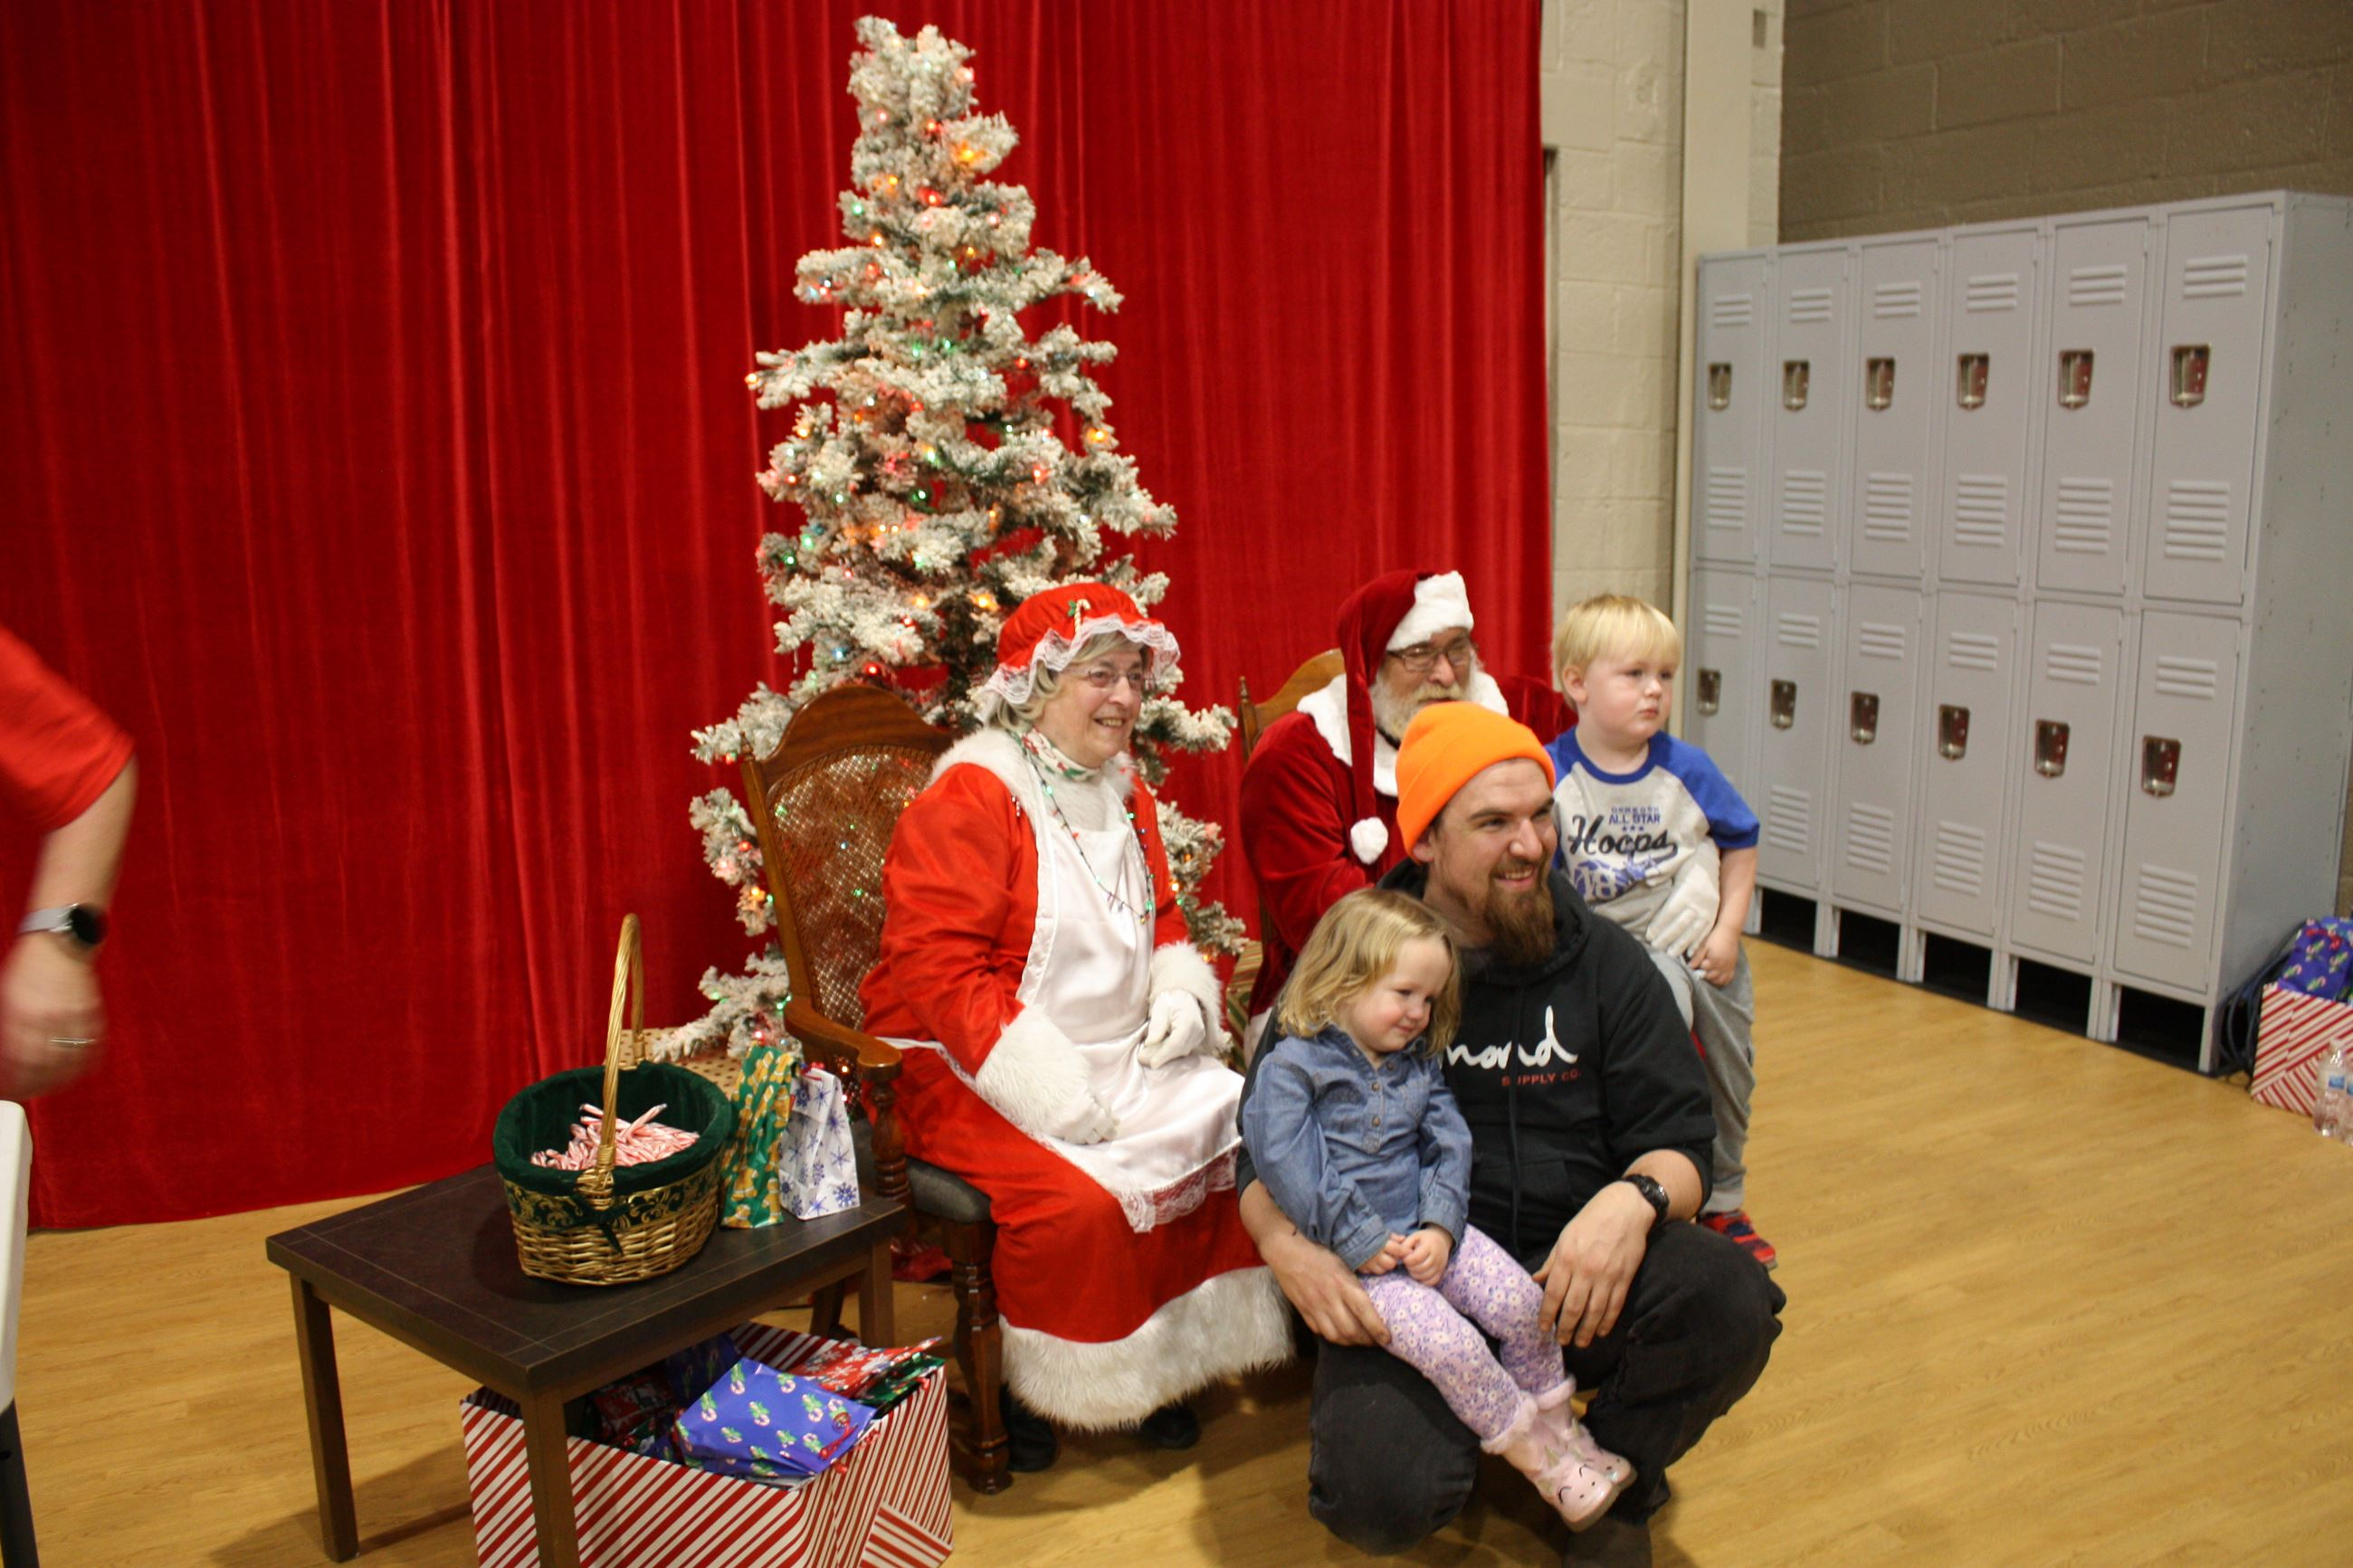 Family poses for photo with Santa and Mrs. Claus